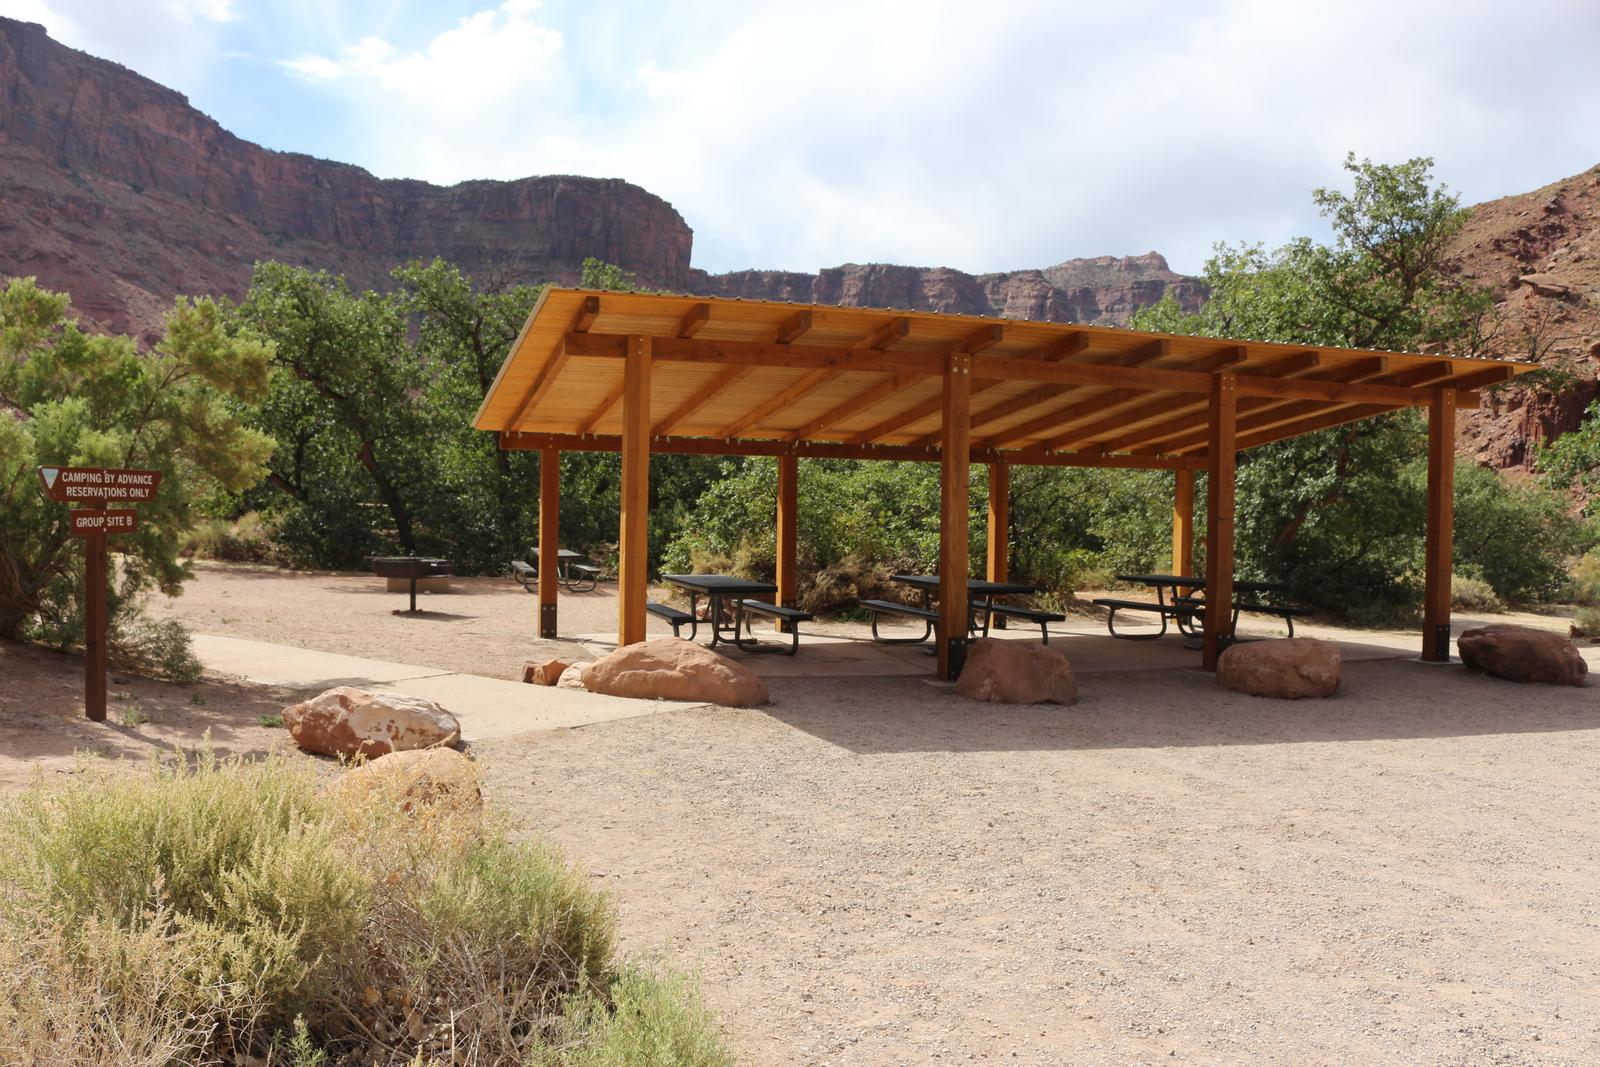 Big Bend Group Site B shade shelter with picnic tables.